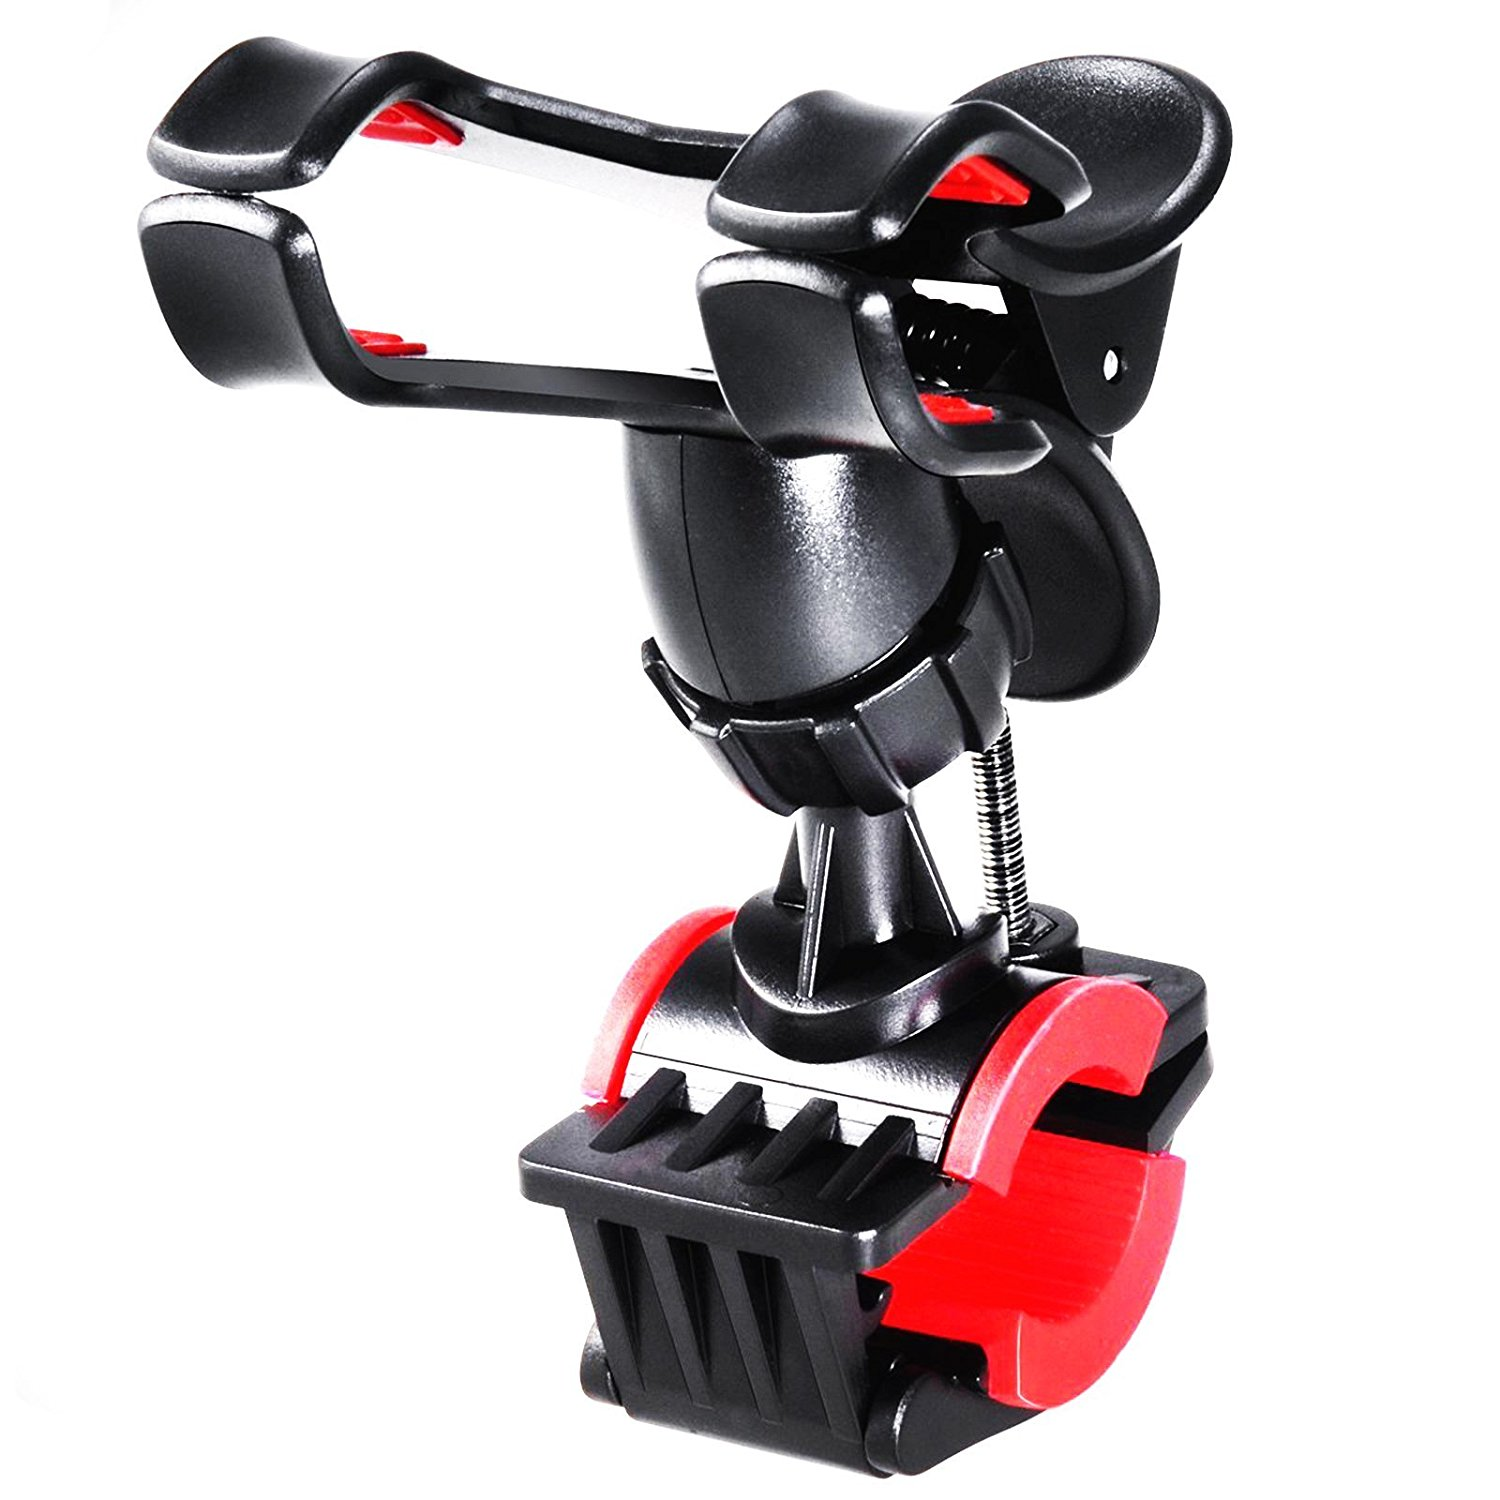 Rymemo Bike Mount Holder Universal 360 Degrees Rotating Motorcycle Bicycle Mtb Bike Clip-Grip Handlebar Mount Holder For iPhone 7/7 Plus, 6/6 Plus/5/5S/5C, Samsung Galaxy S6/S6 Edge/S5/S4, Red